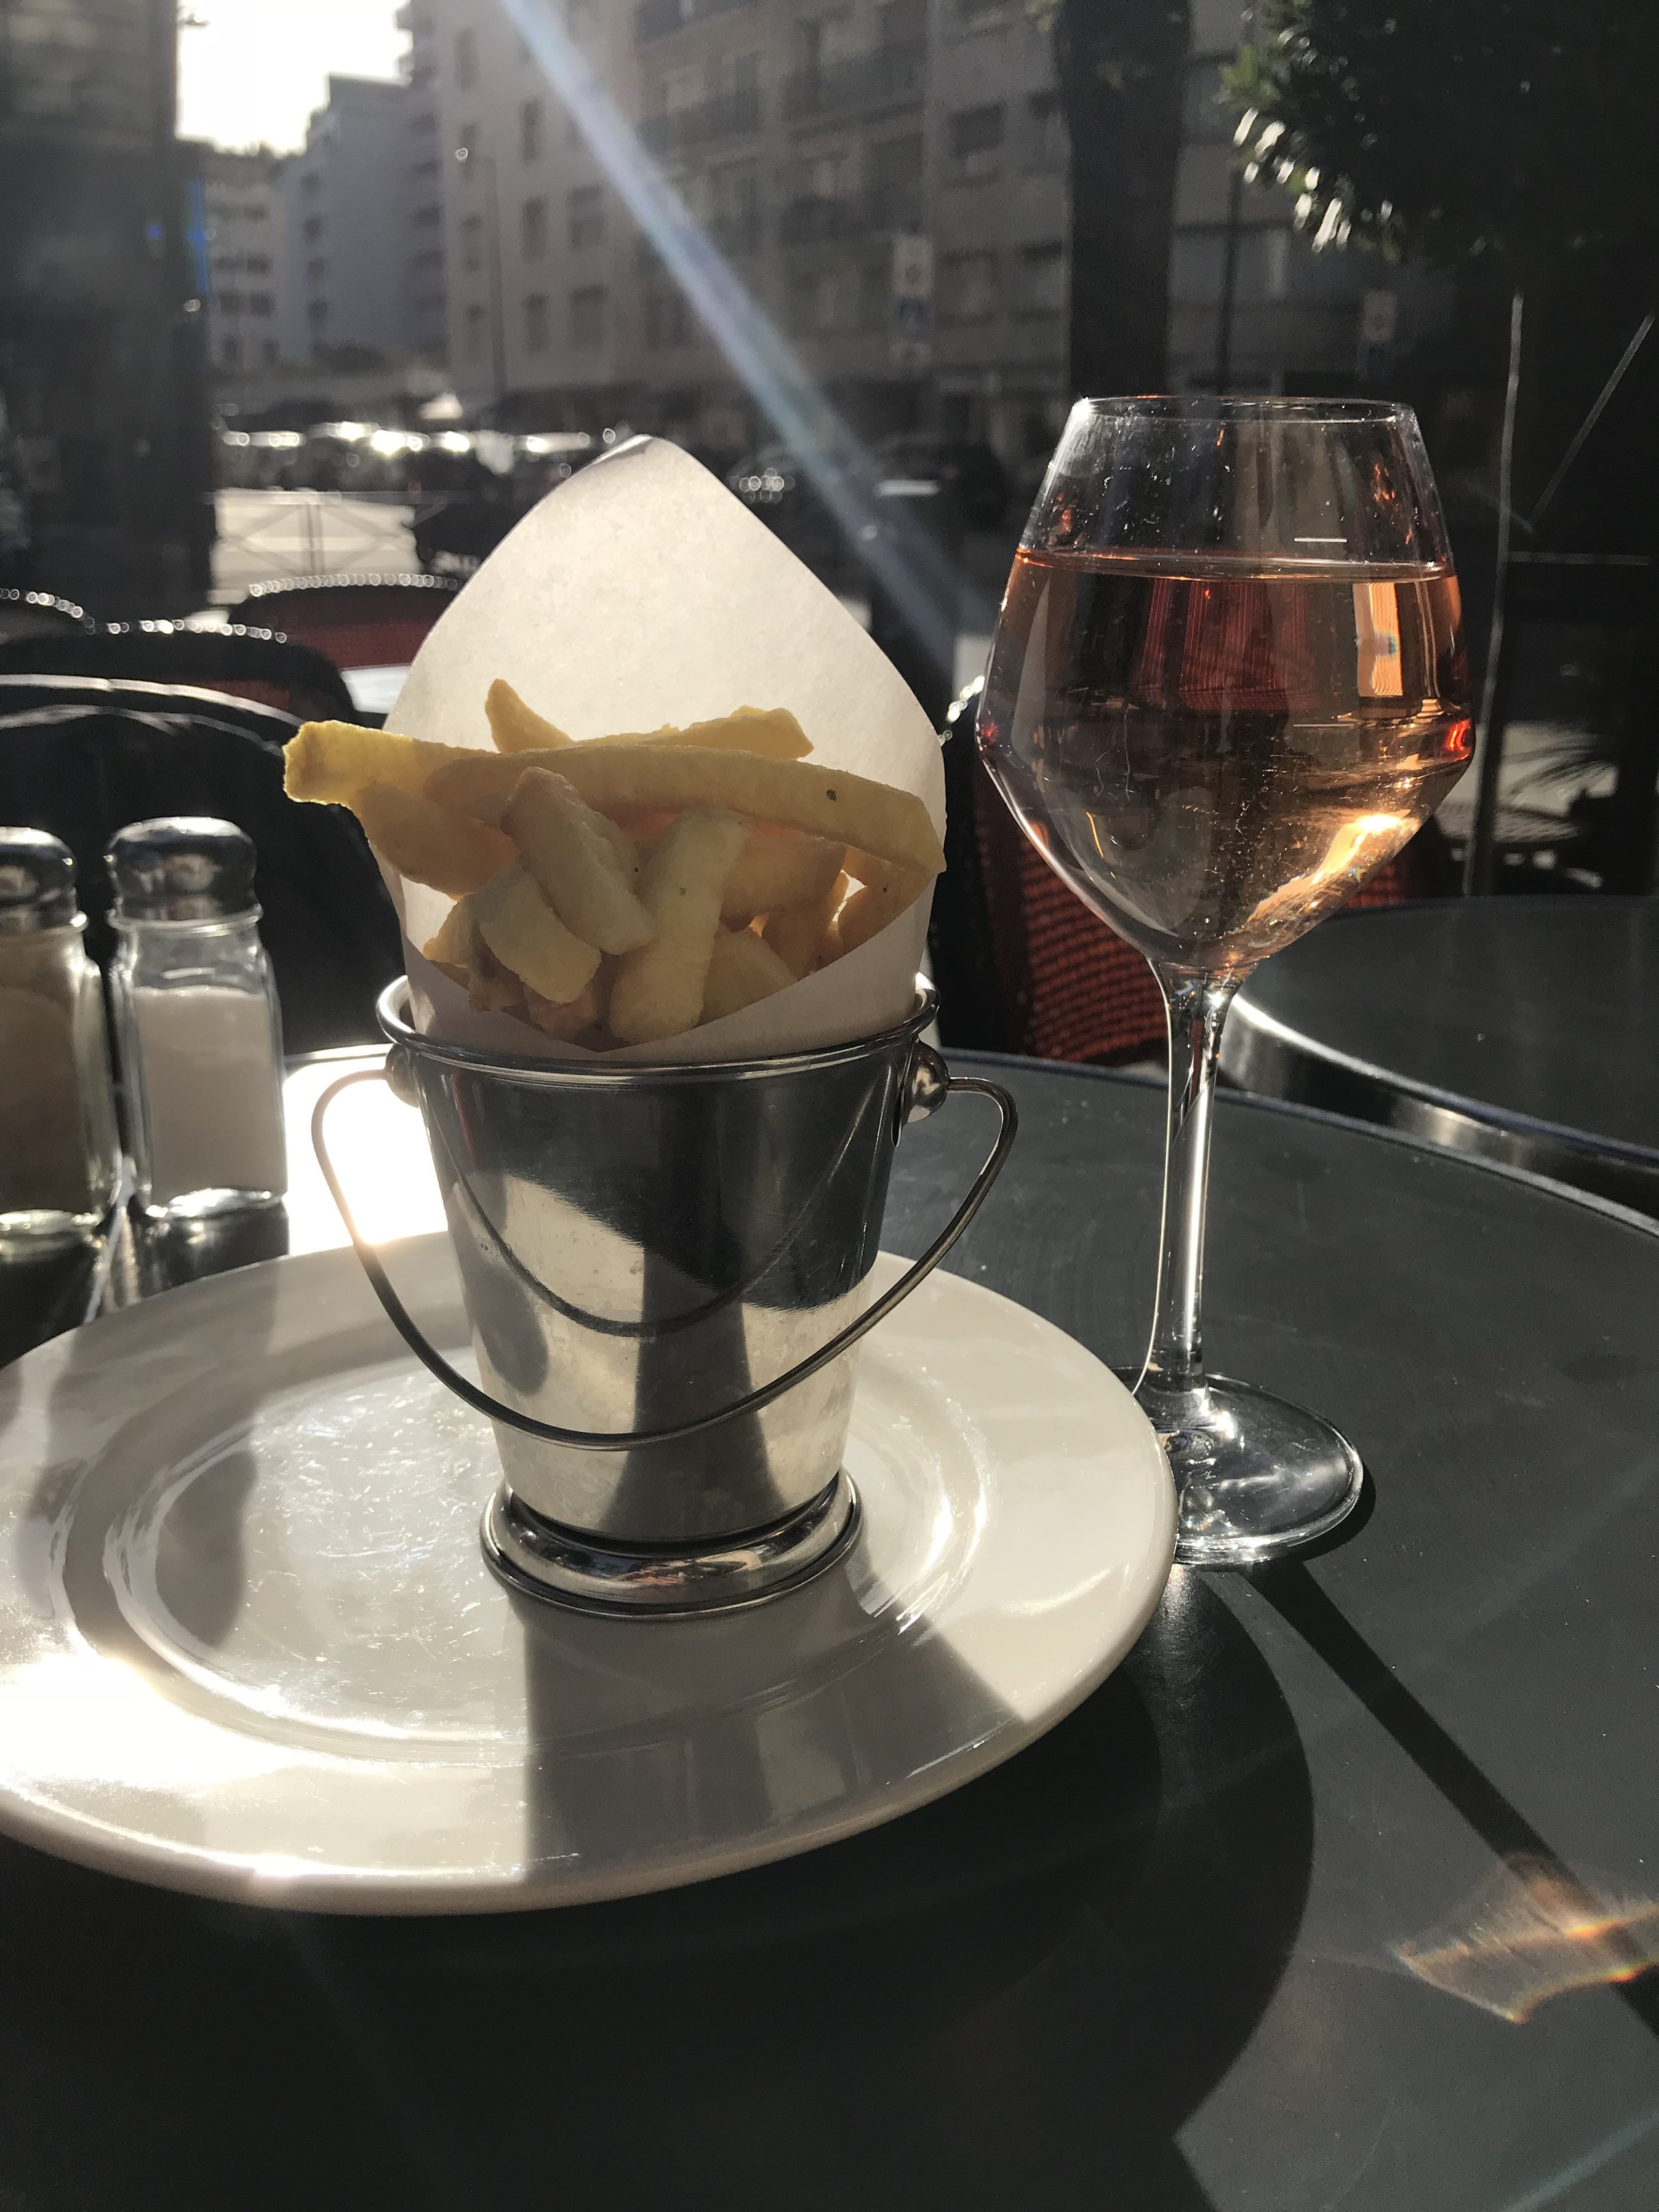 Pomme Frites and an iced cold glass of Rosé. The perfect late afternoon snack.